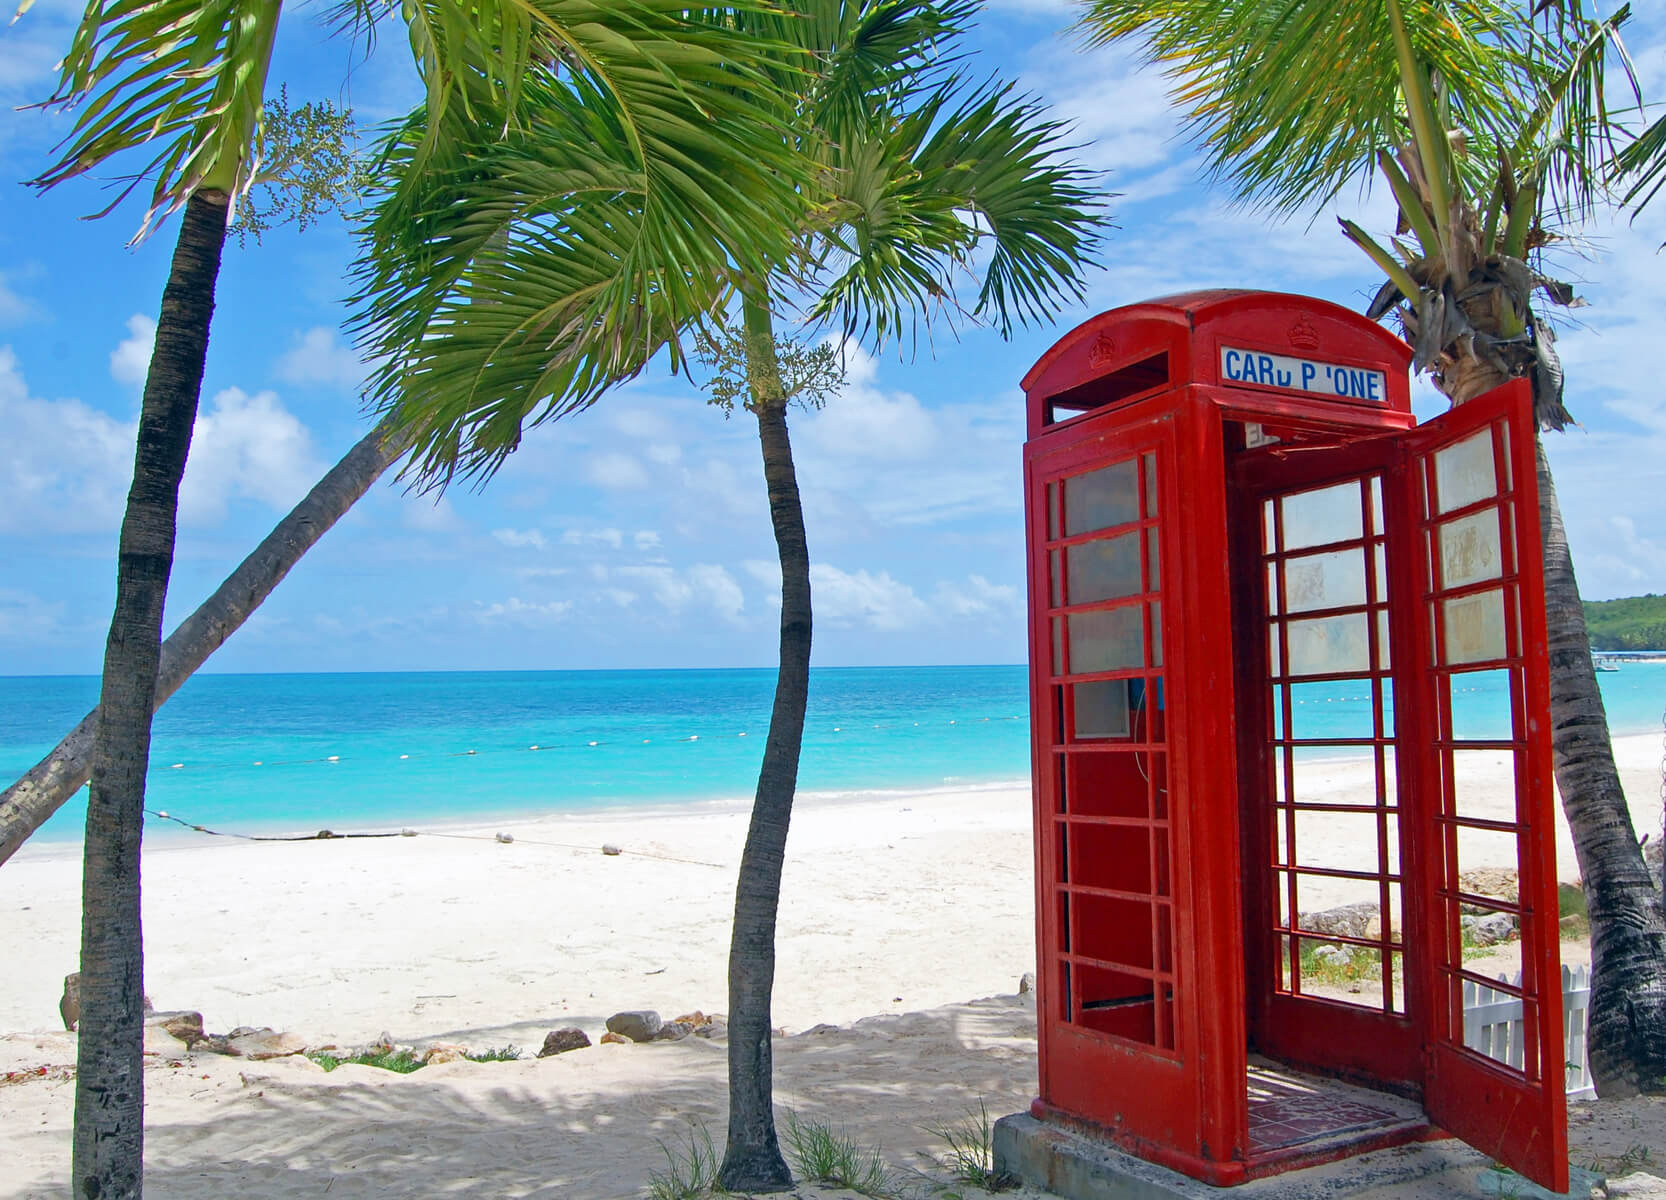 Non-stop from London, UK to Antigua and Barbuda for only £382 roundtrip (Sep-Mar dates)